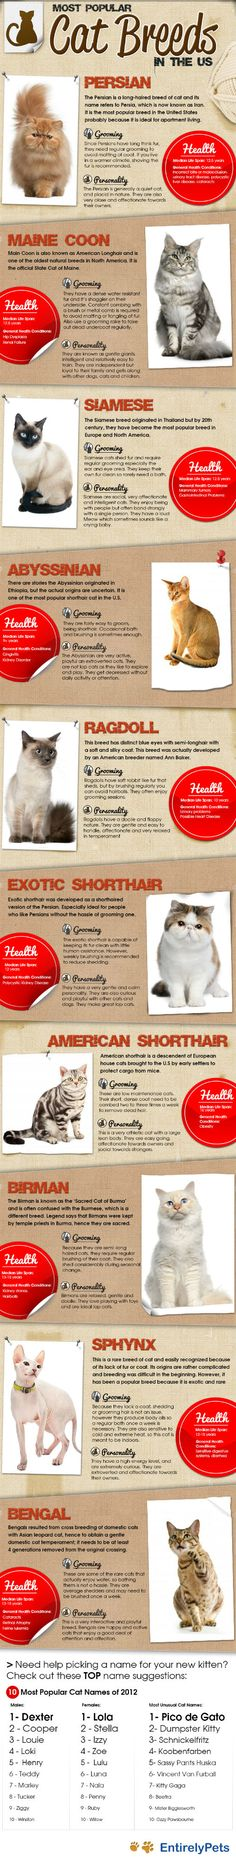 Curious which #cat breeds are the most popular in America? You voted and here are the results: http://www.entirelypets.com/most-popular-cat-breeds.html?utm_source=pinterest&utm_medium=web&utm_campaign=epptpostinfo#utm_sguid=148622,adf48b66-f9af-498b-e06b-c4350a838c45